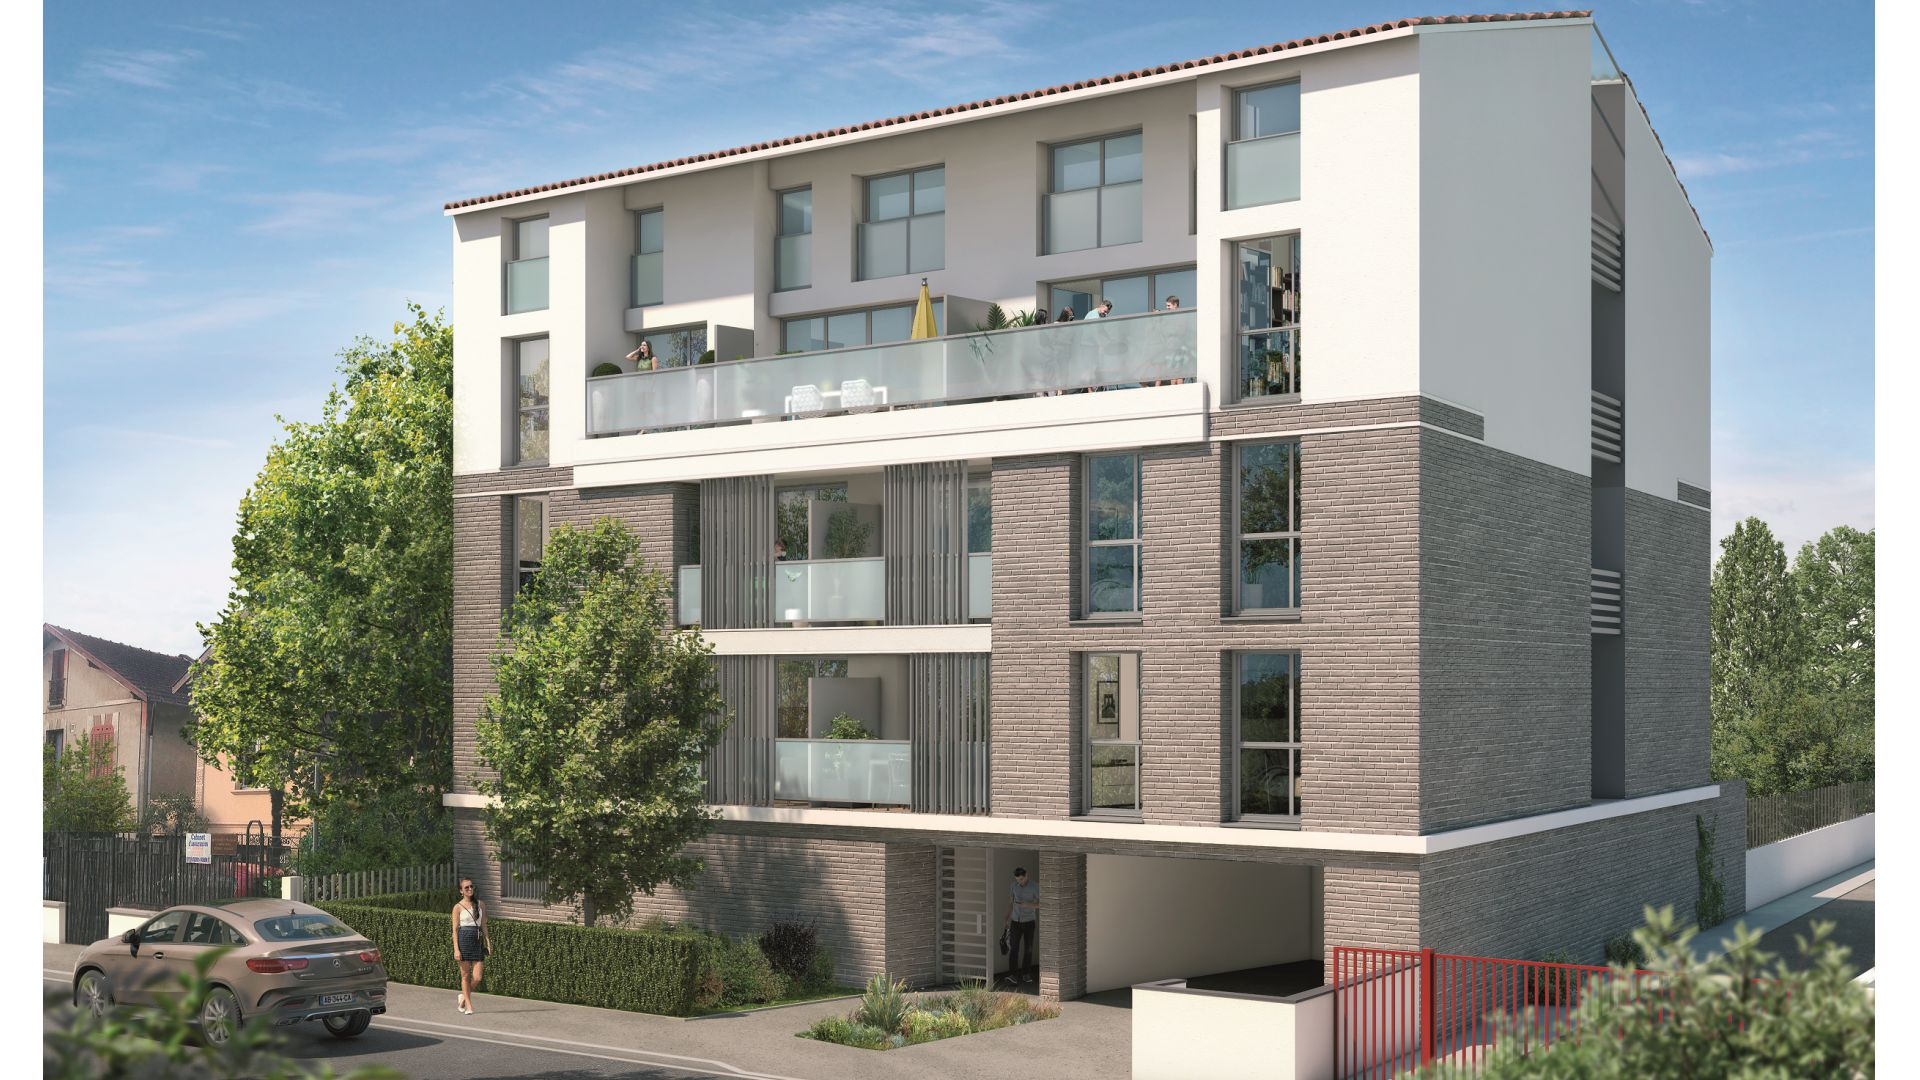 GreenCity immobilier - Toulouse rue des Fontaines - 31300 - résidence Villa Patricia - appartement T2 - T3 - T4 - T5